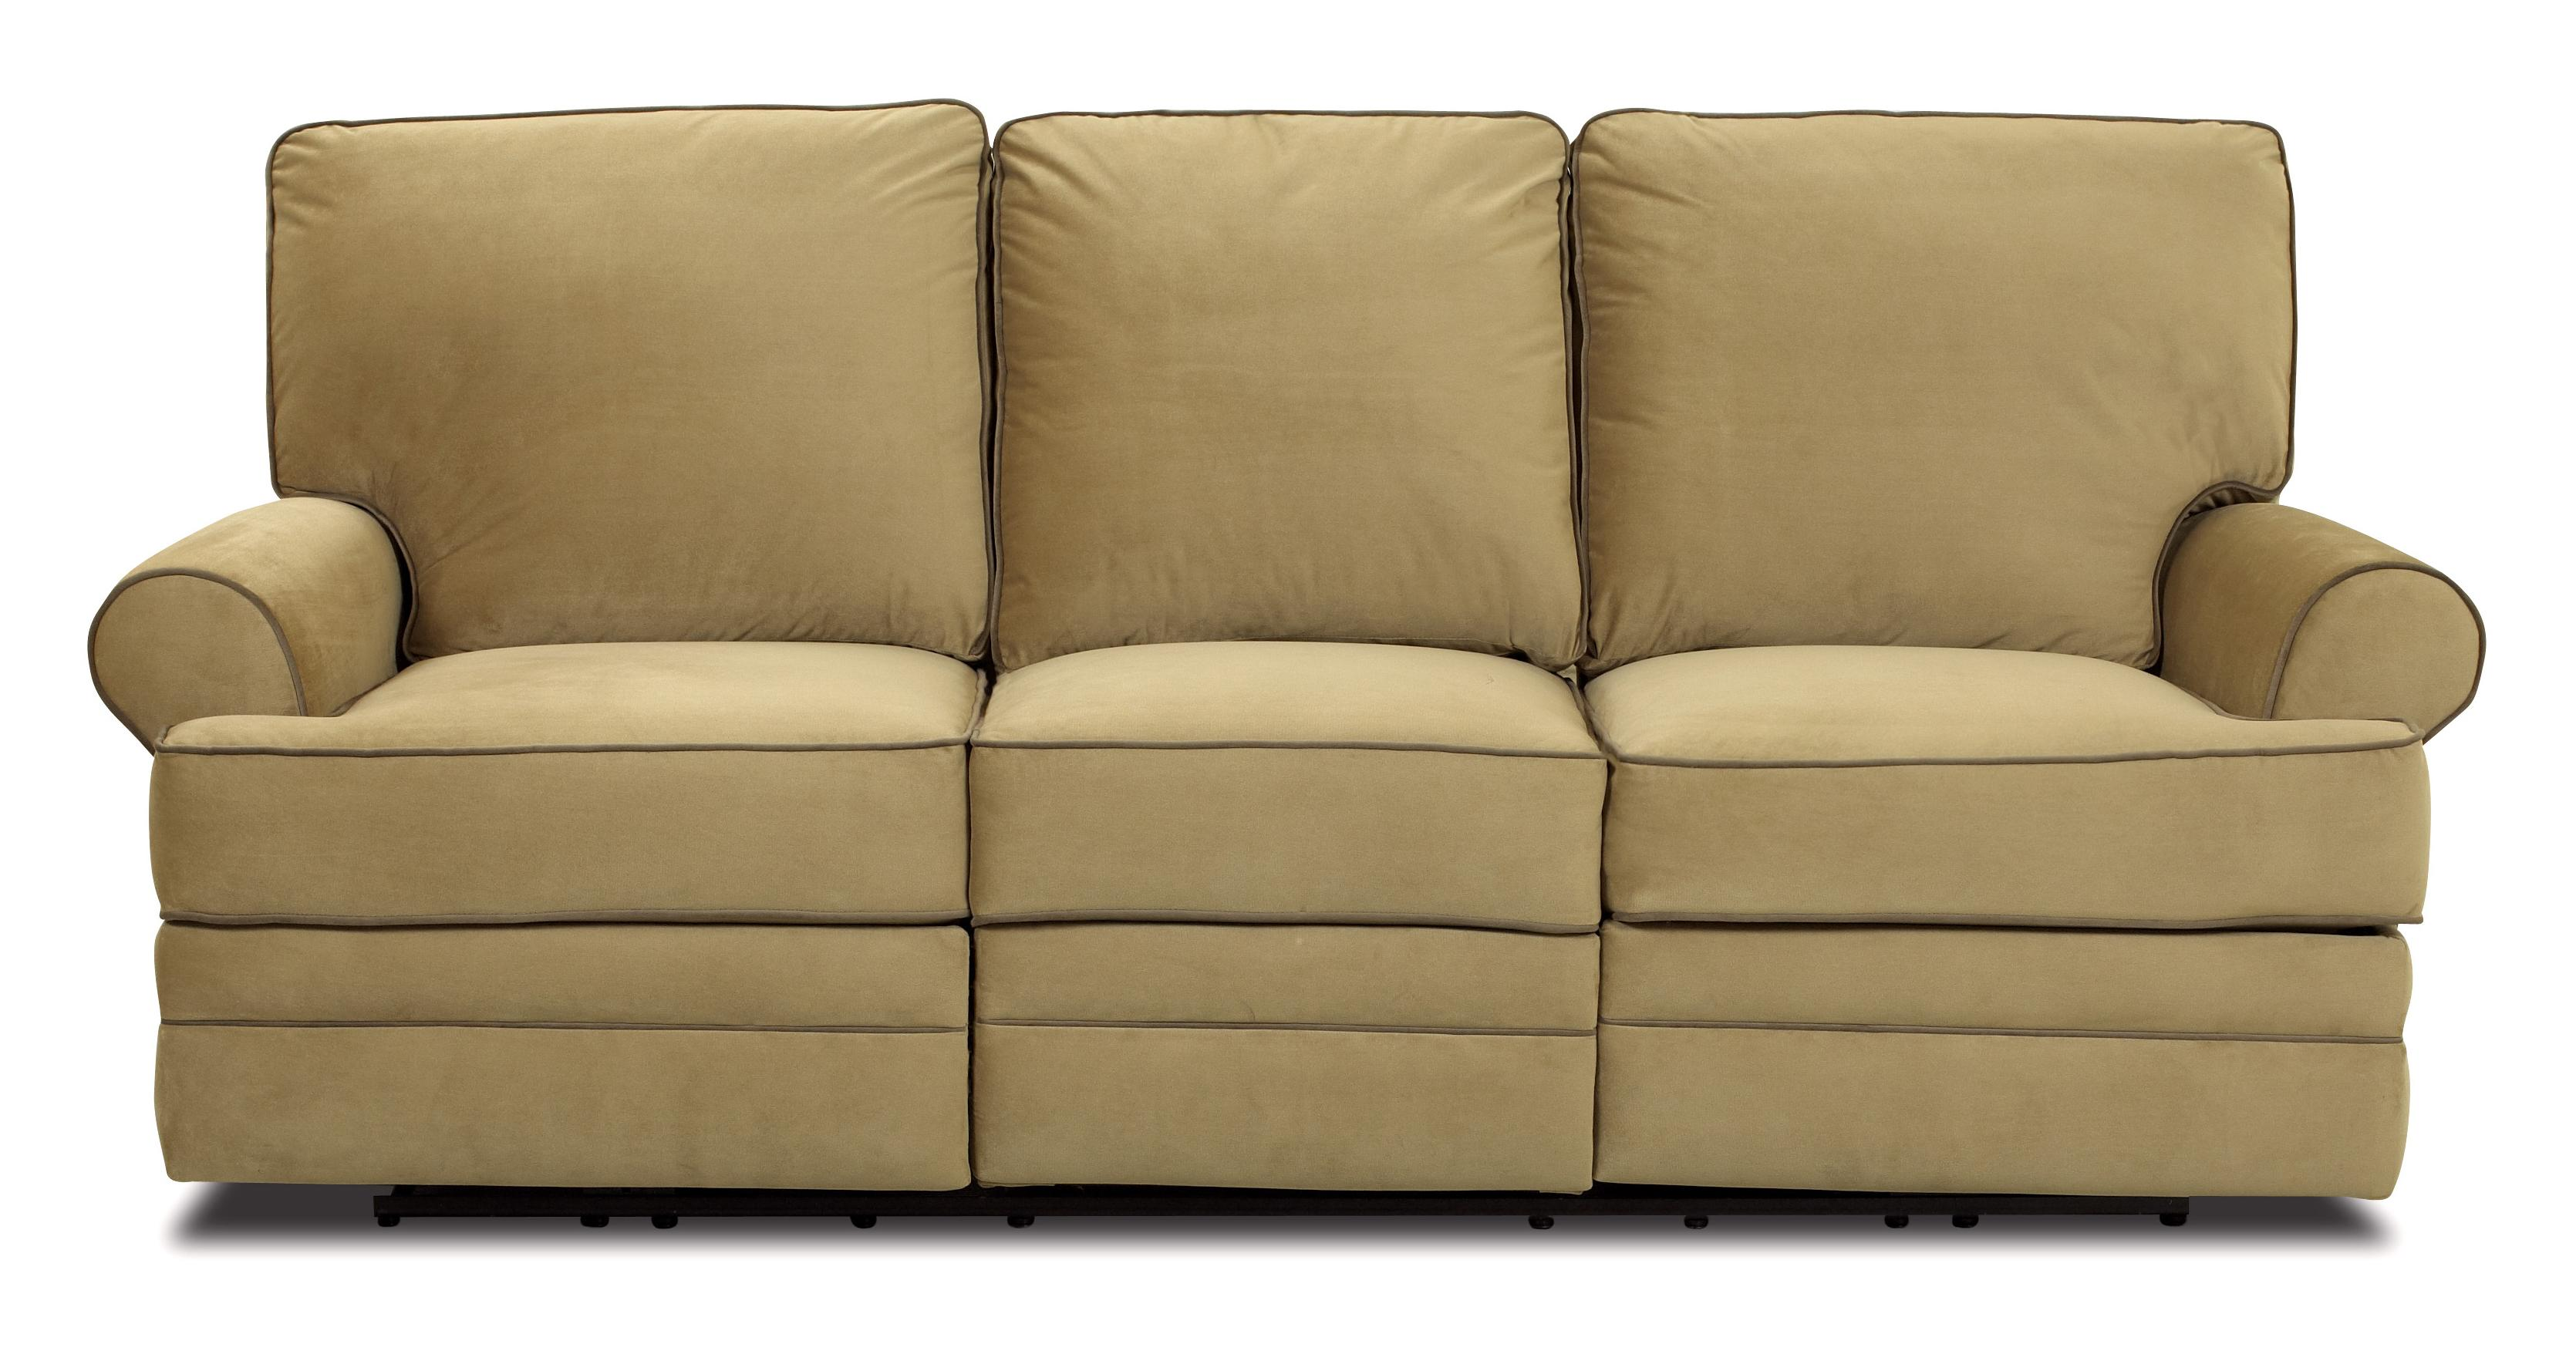 Power Dual Reclining Sofa By Klaussner Wolf And Gardiner